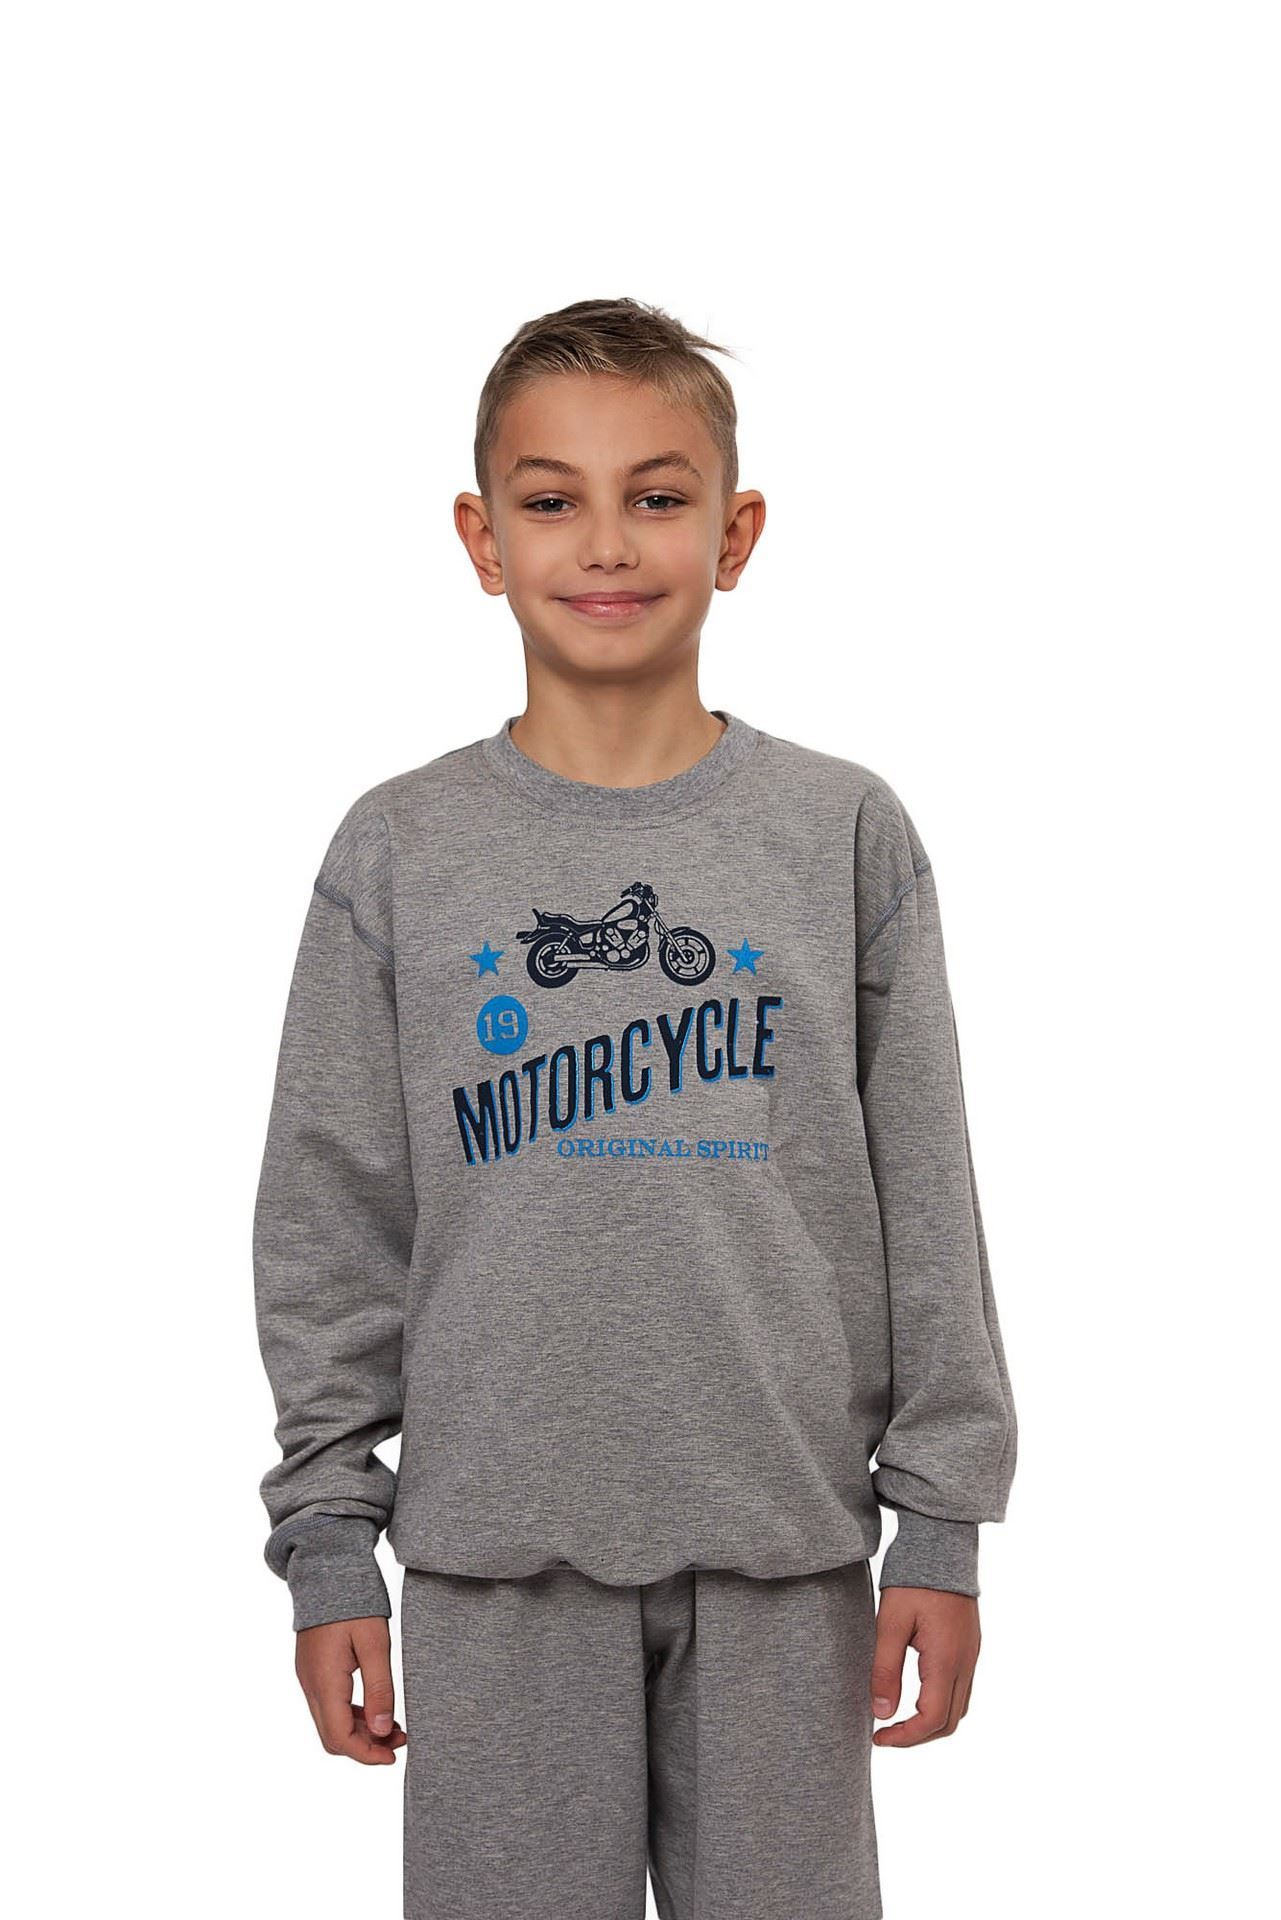 Picture of Boy's long sleeves shirt